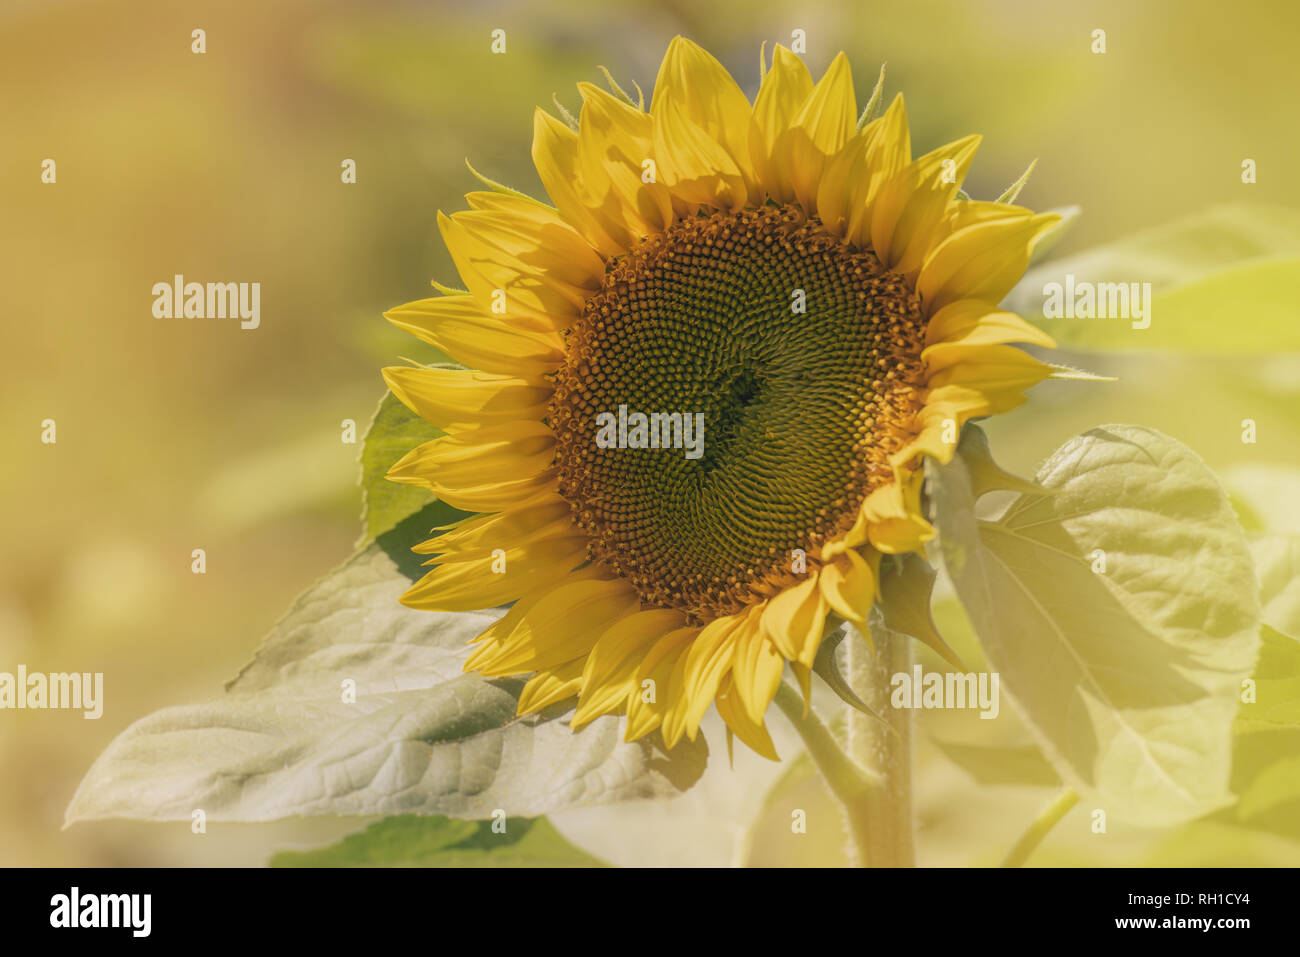 plant of sunflower on blooming with blurred background with copy space - Stock Image